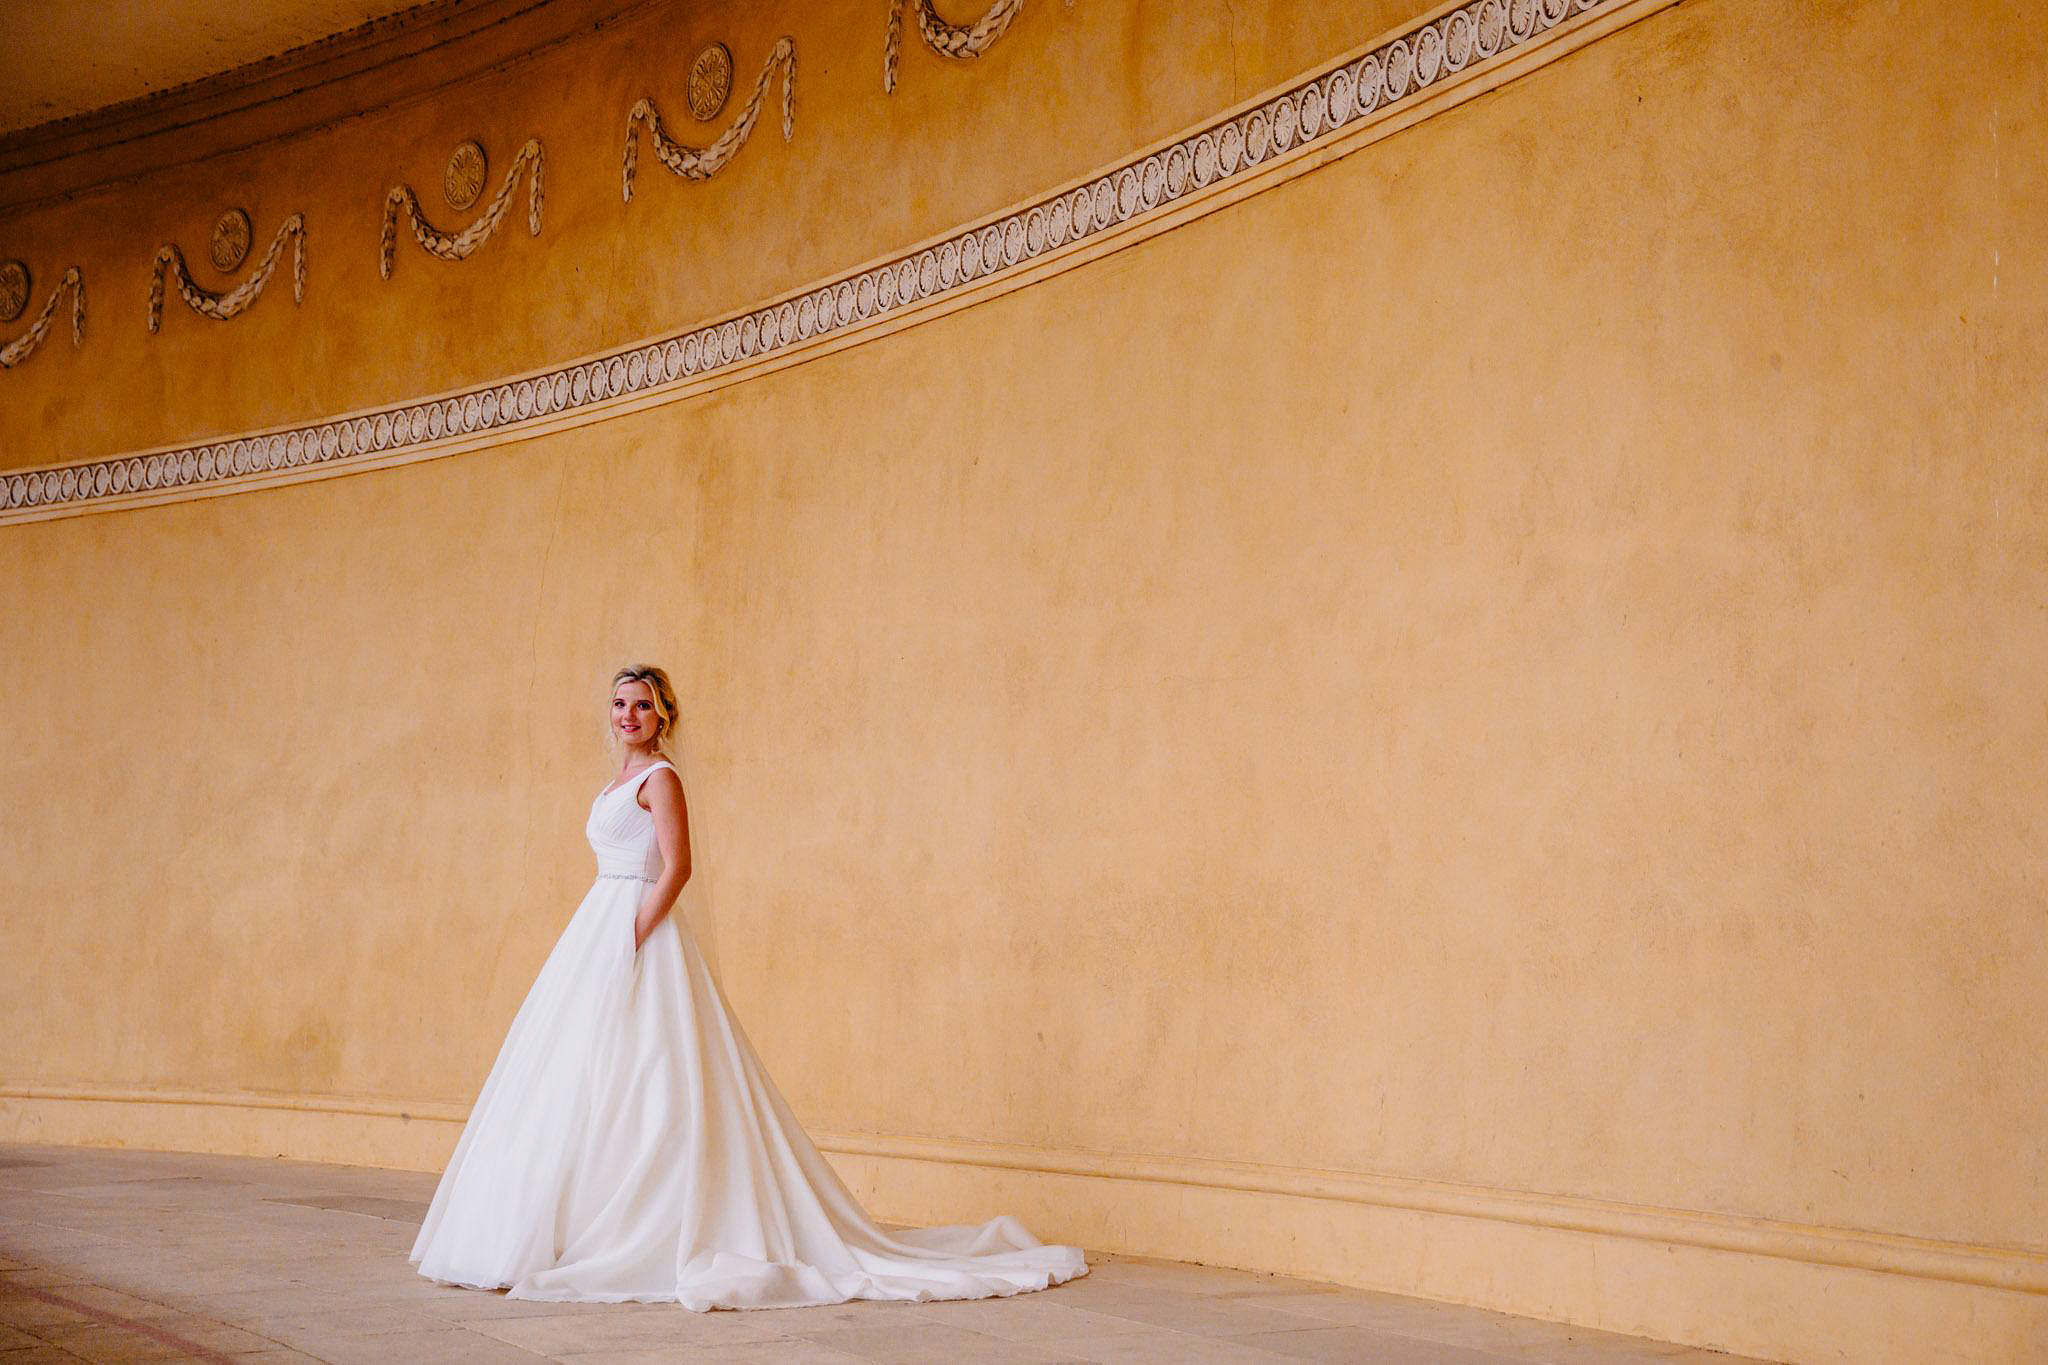 a stunning bridal portrait by Elliot w patching